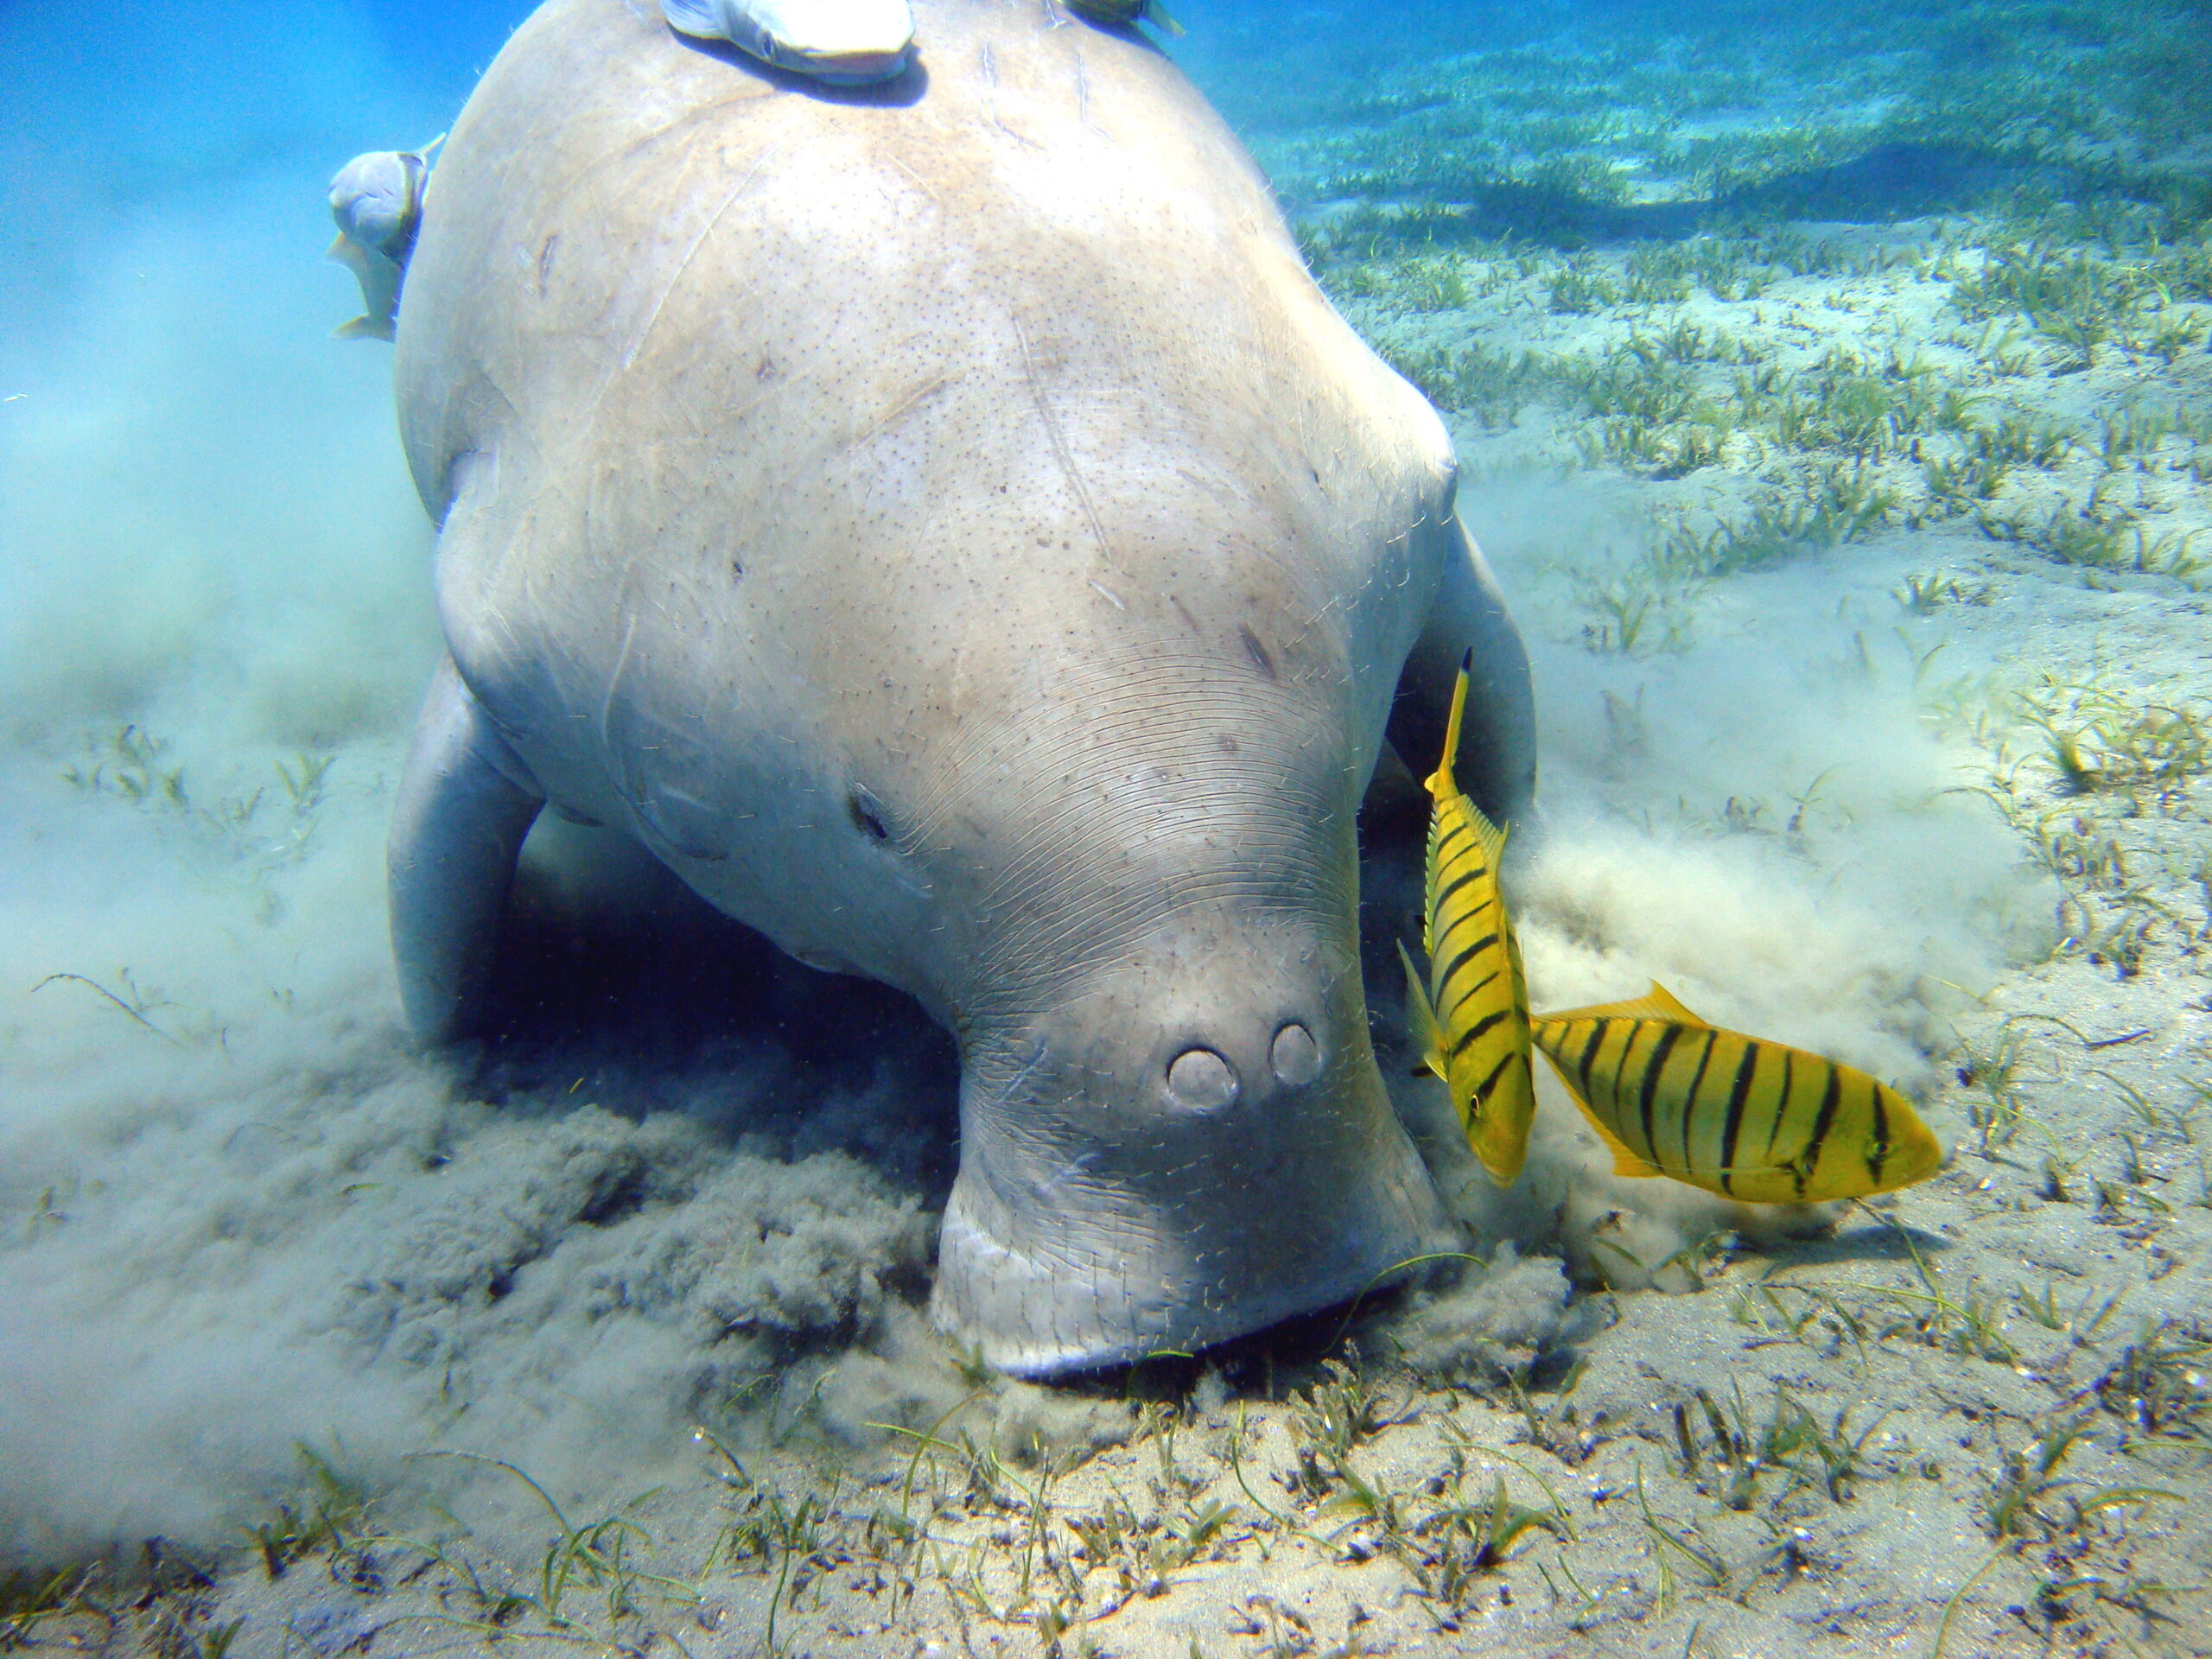 Legal Battle Begins in Appeal Challenging US Military's Threat to Rare Okinawa Dugongs